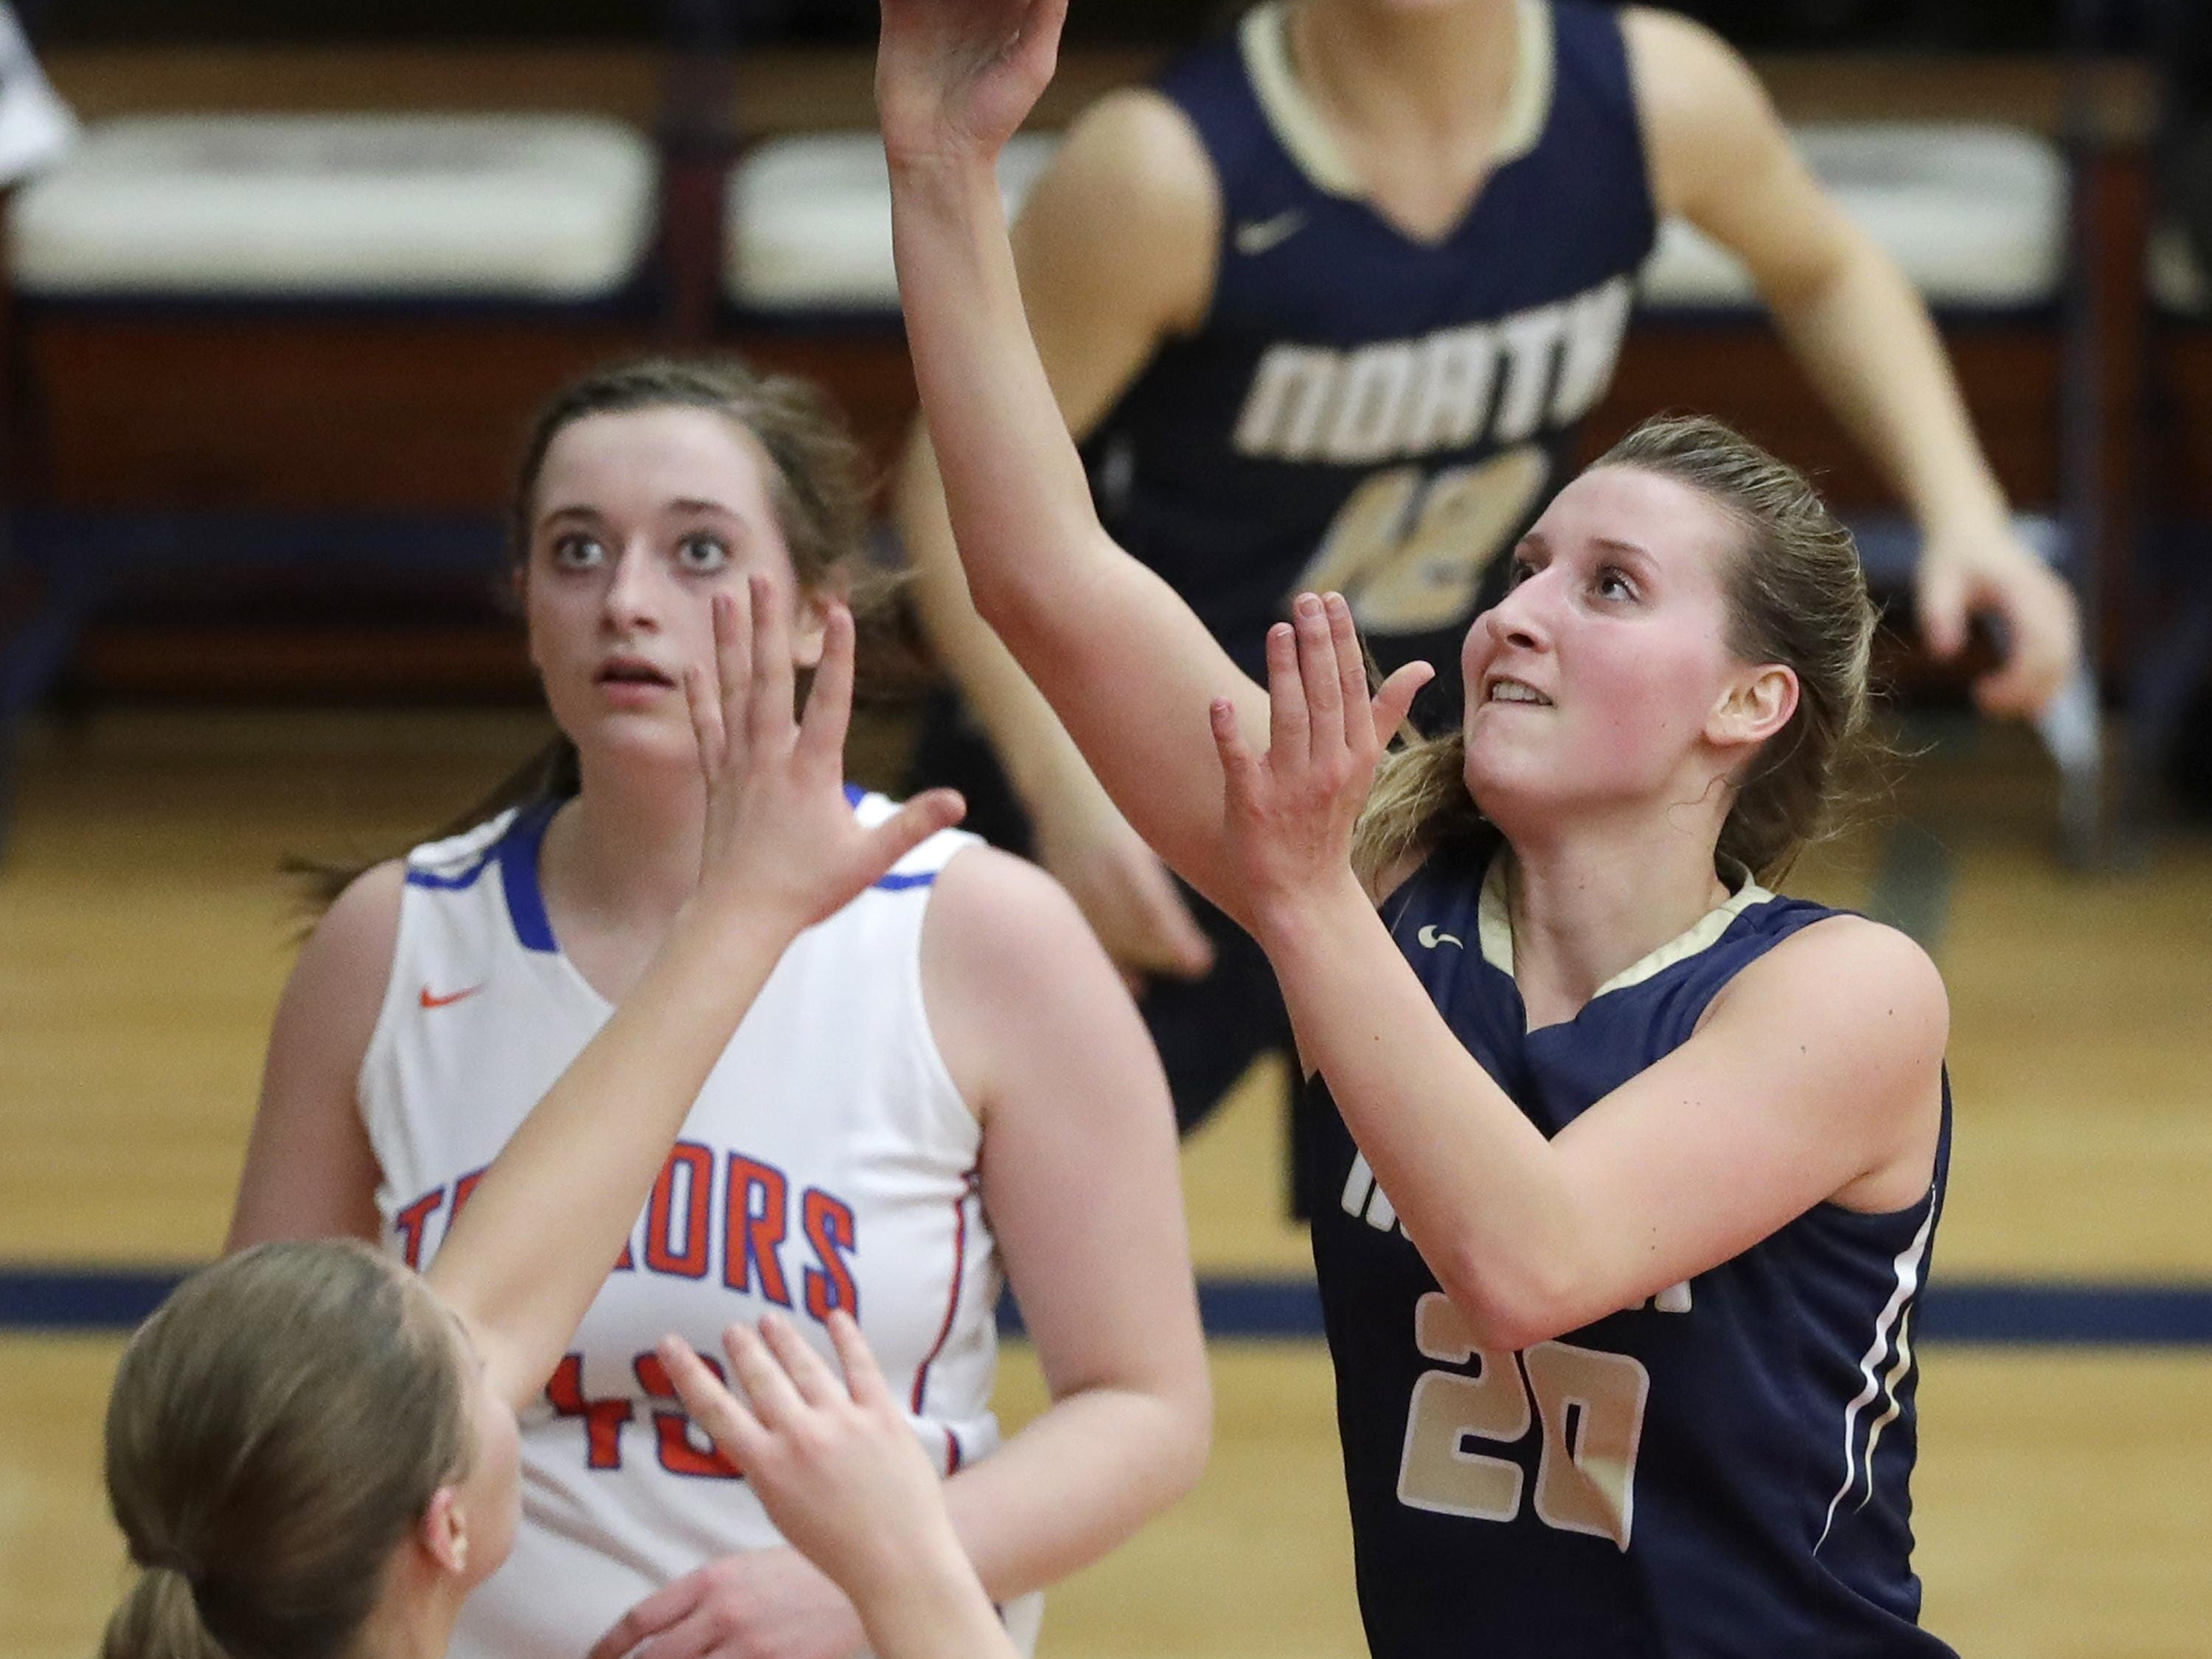 Appleton North's Sydney Levy scores against Appleton West High in a WIAA Division 1 sectional semifinal on March 2.